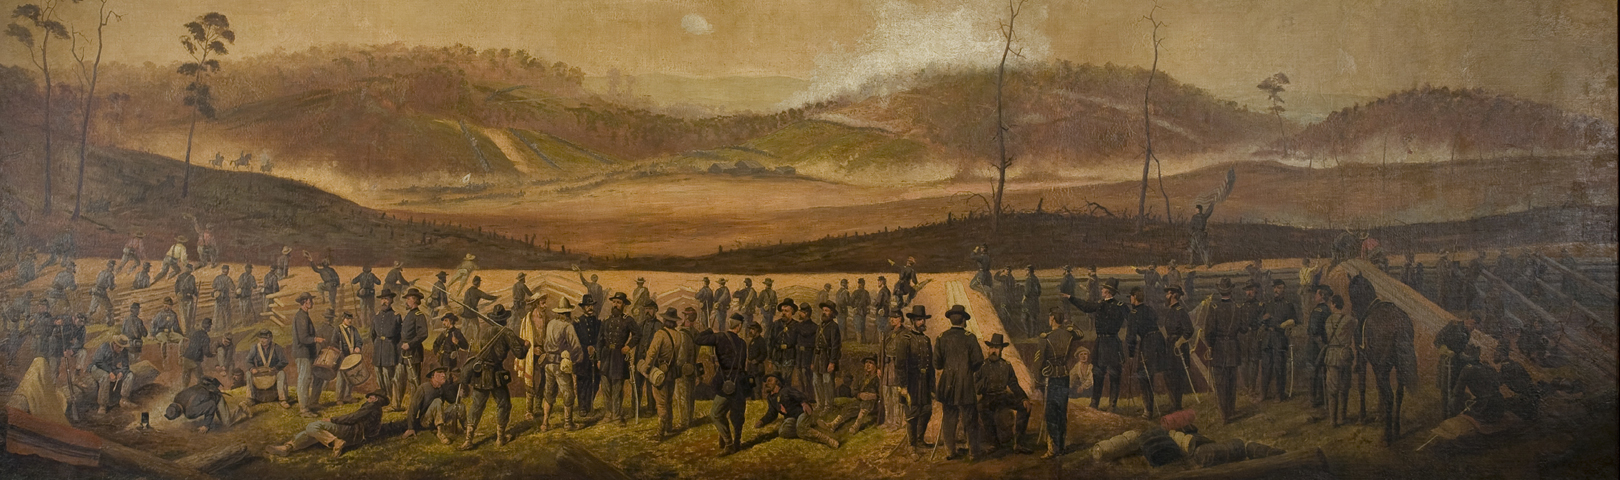 CIVIL WAR PAINTINGS | Now on Display